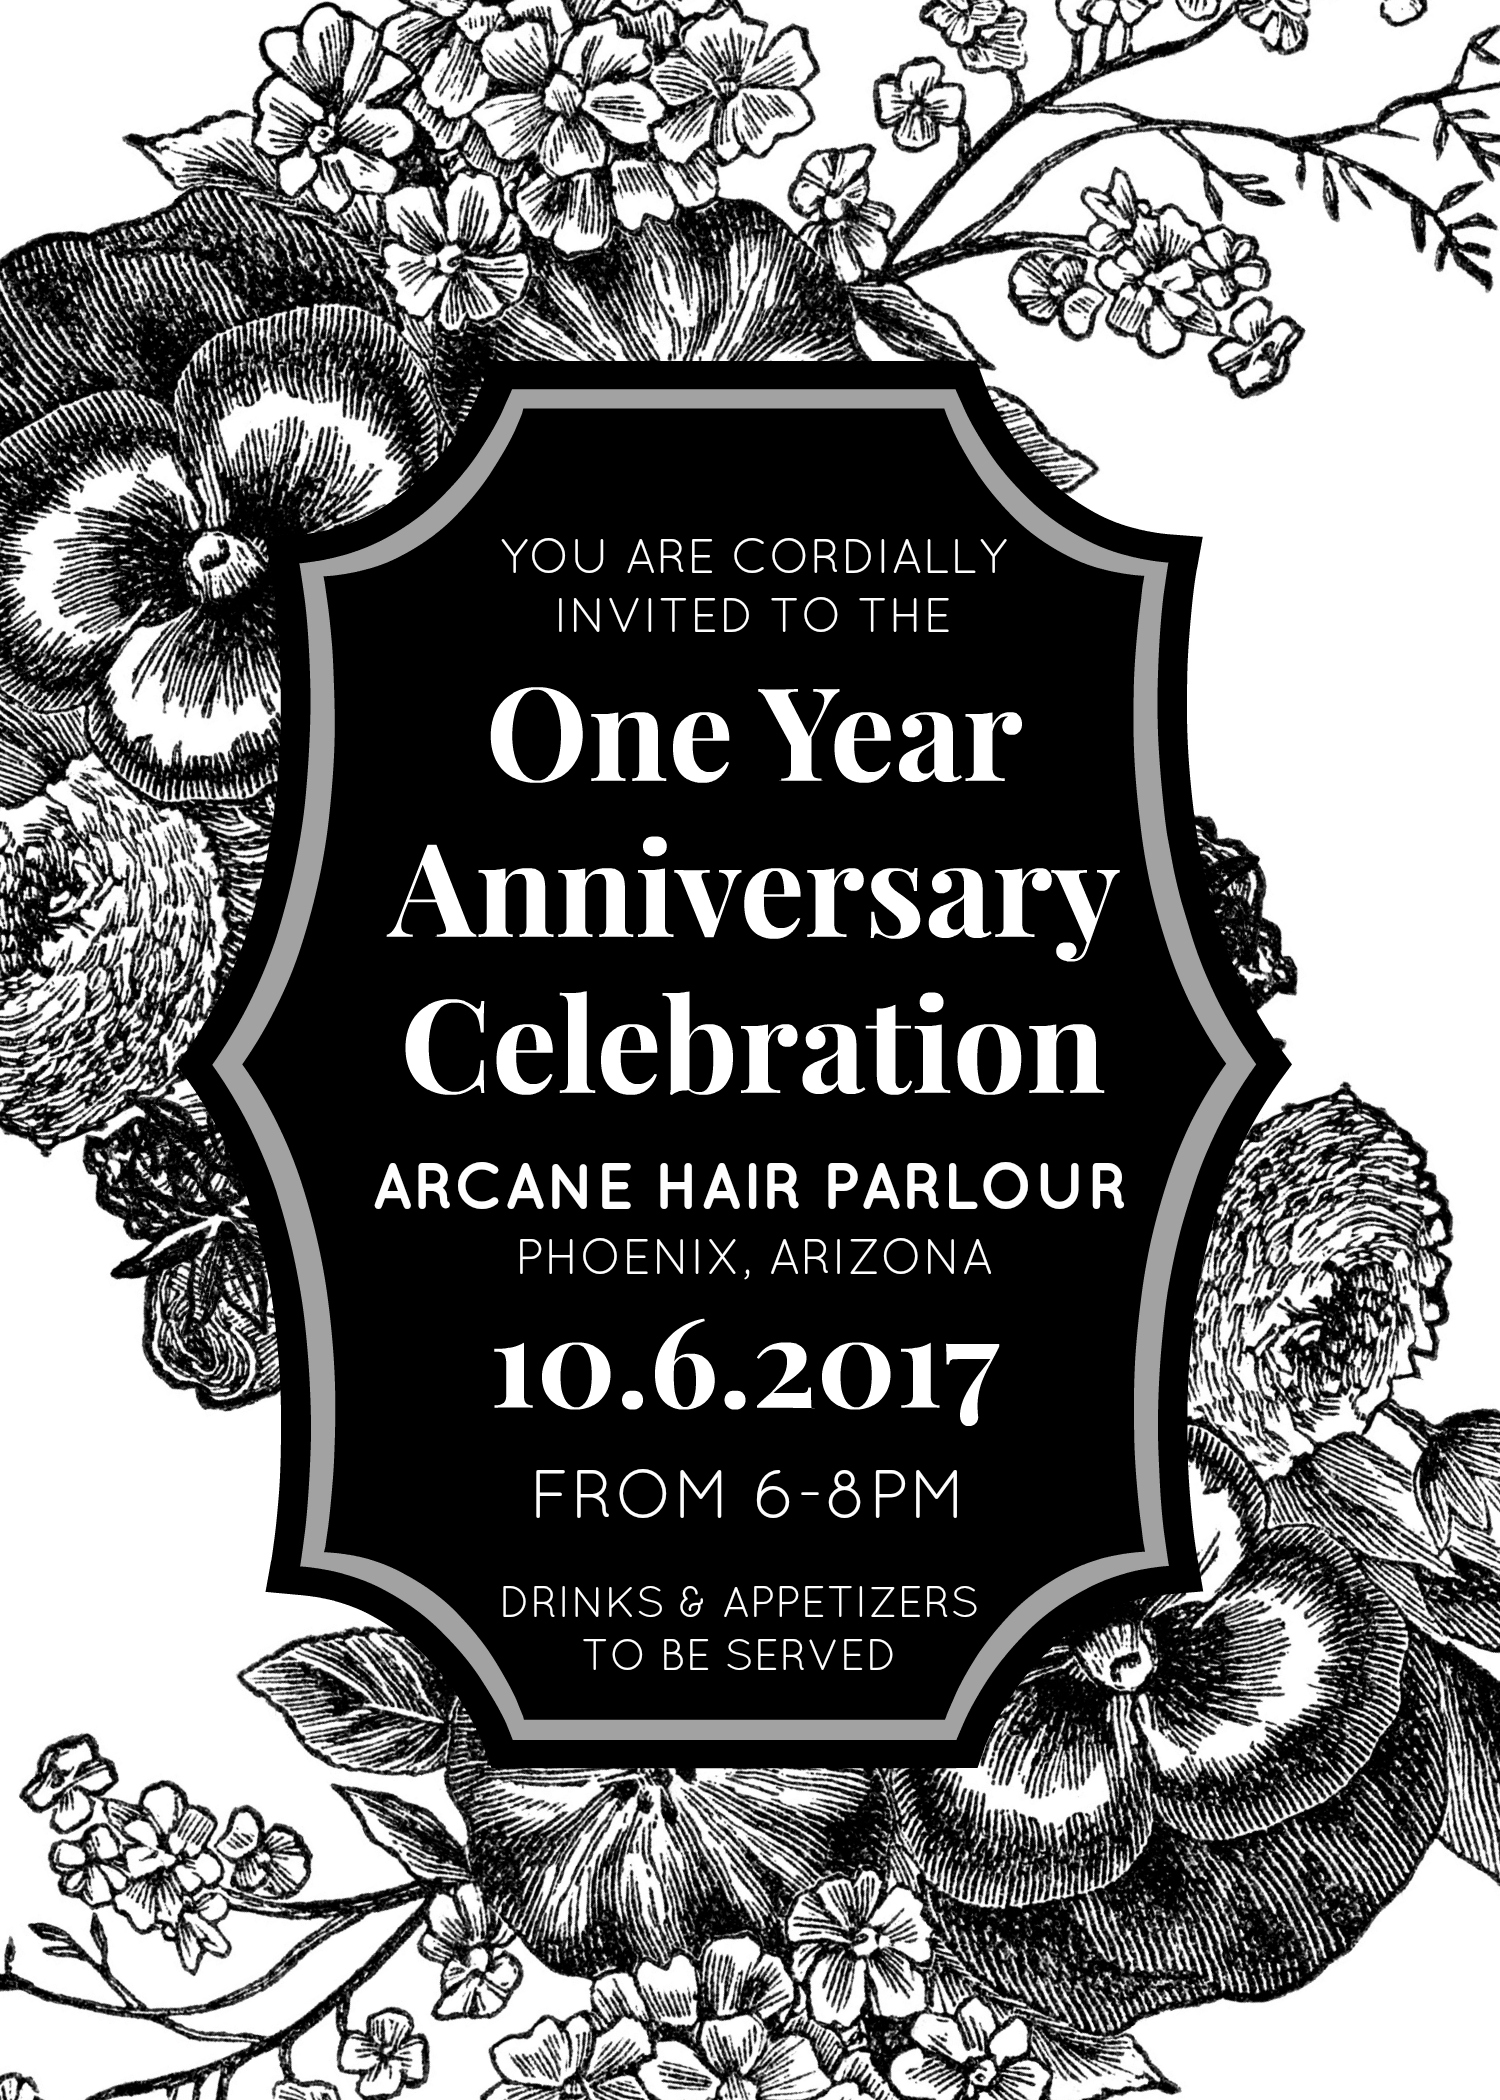 One year anniversary arcane hair parlour downtown phoenix as a thank you for supporting arcane during our first year of business we invite you to celebrate with us at our anniversary stopboris Image collections